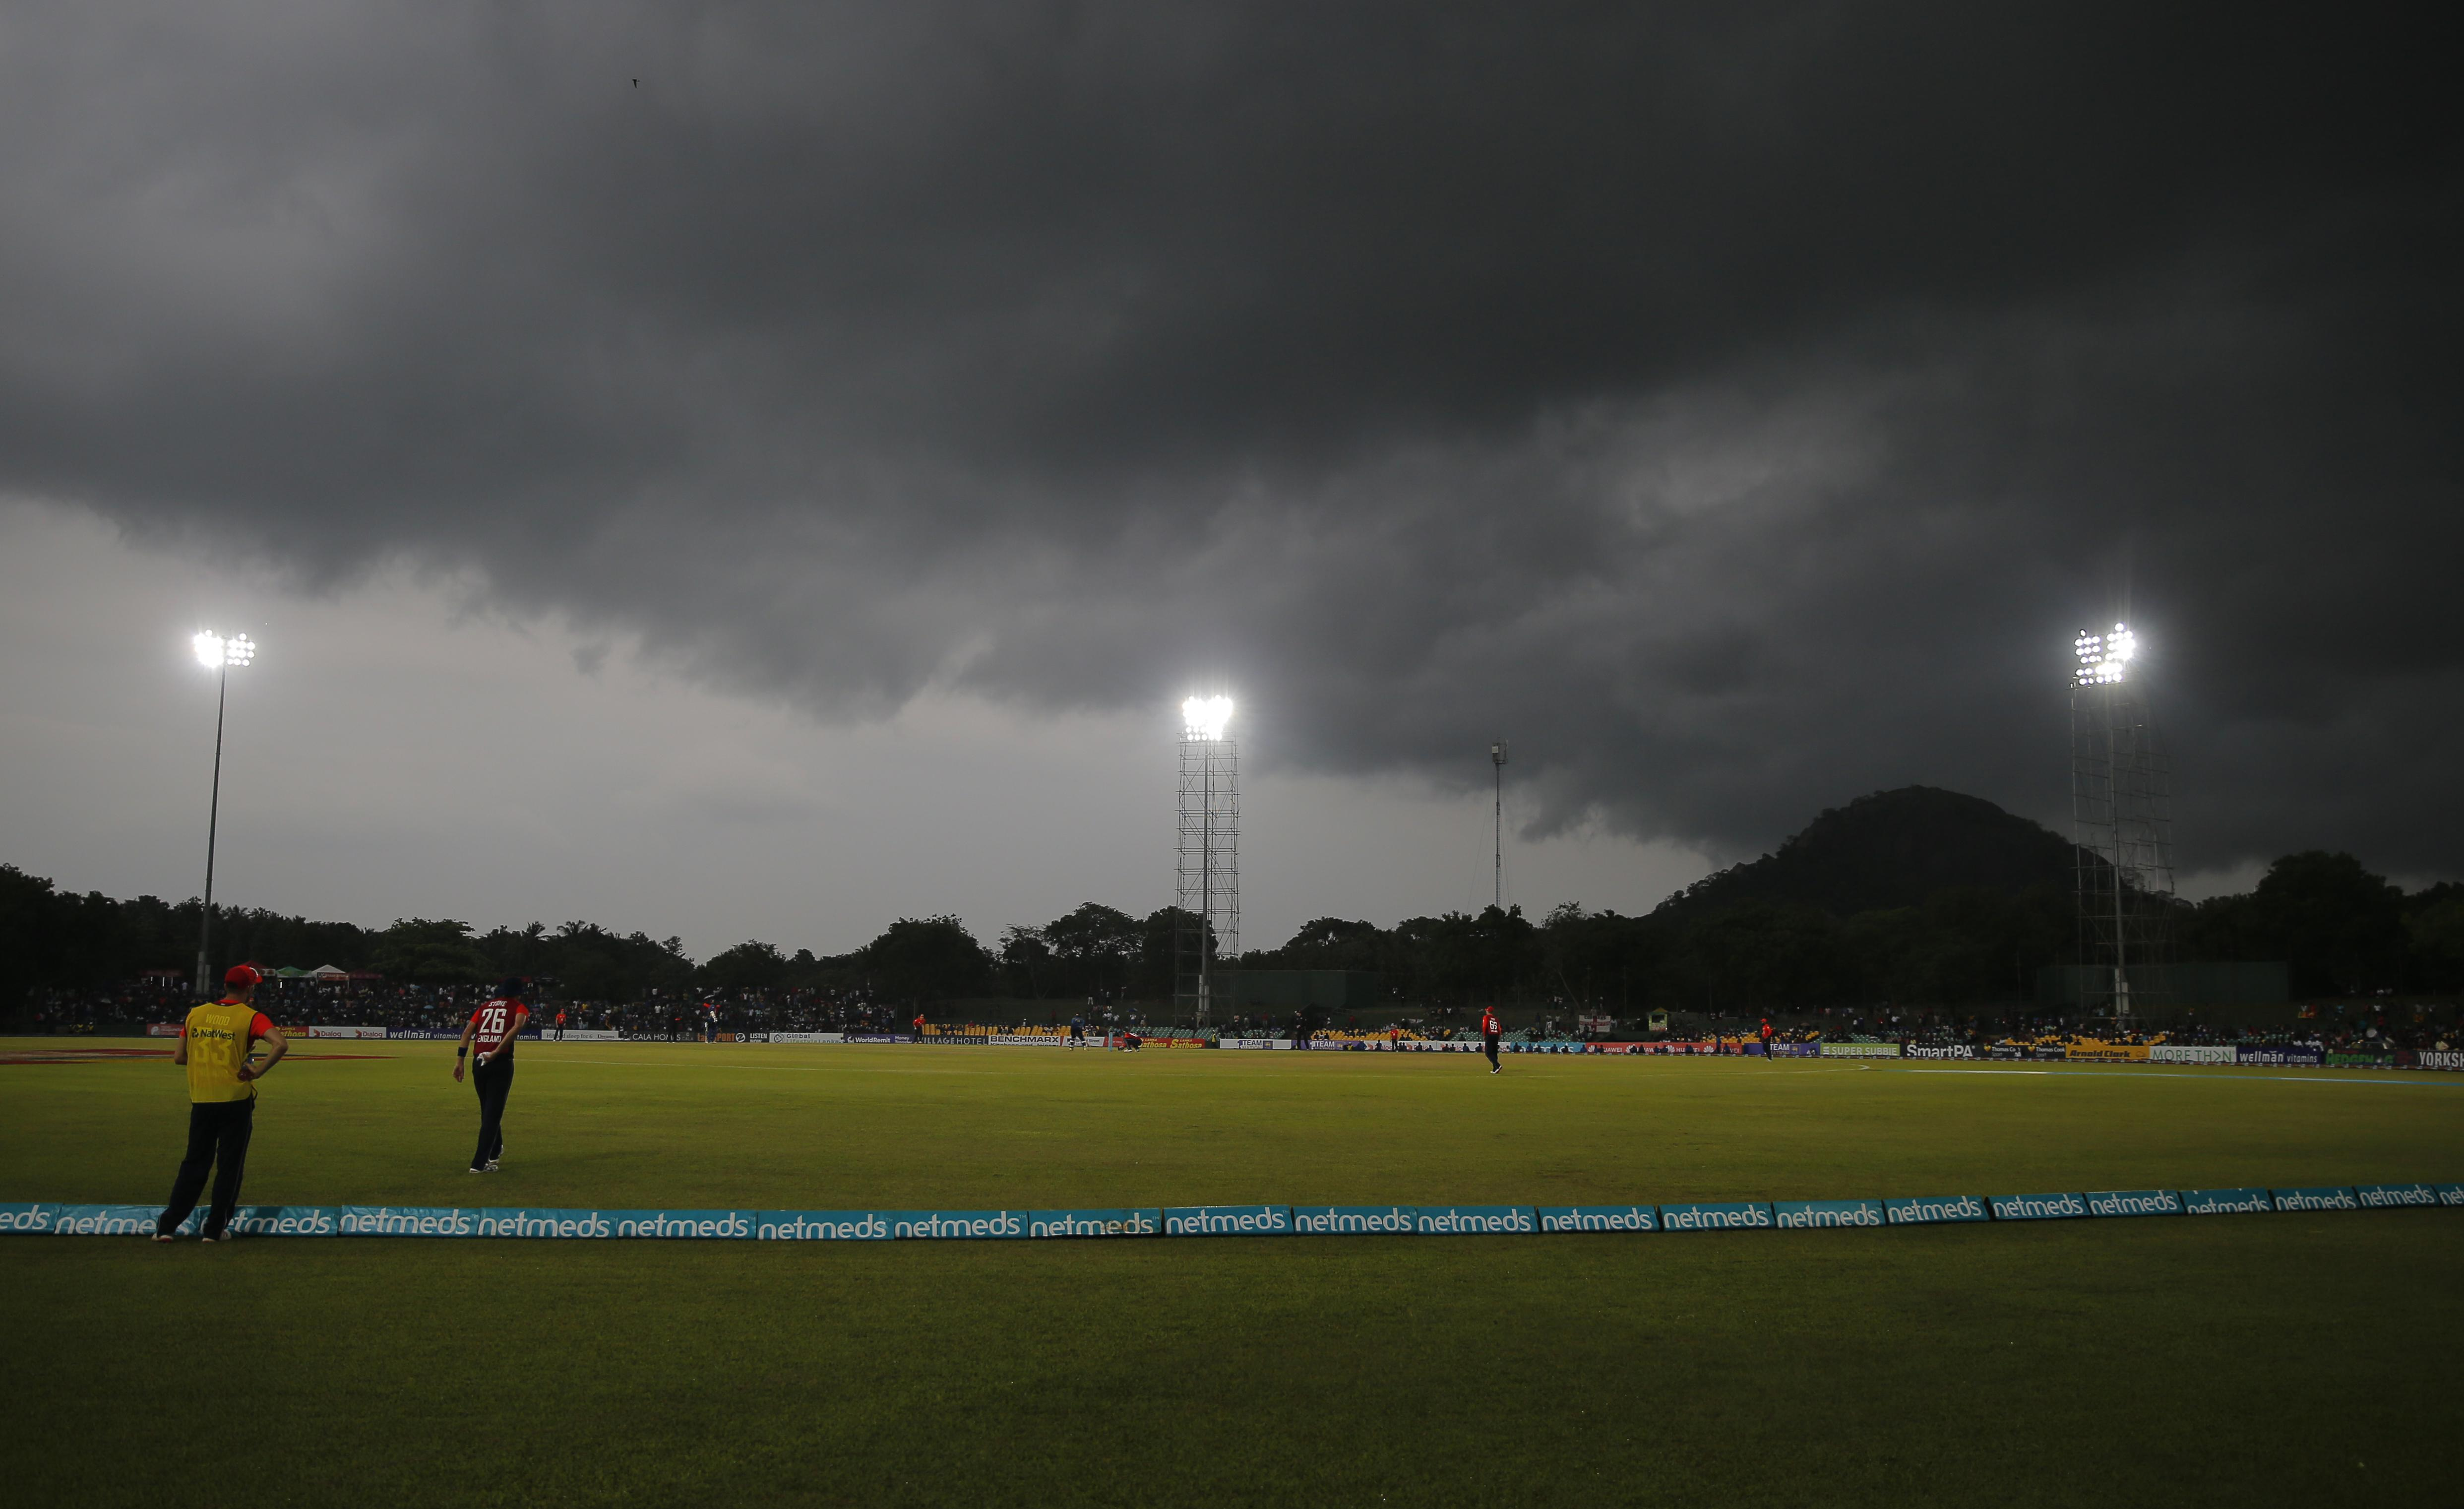 The match was brought to an early conclusion after it rained once again